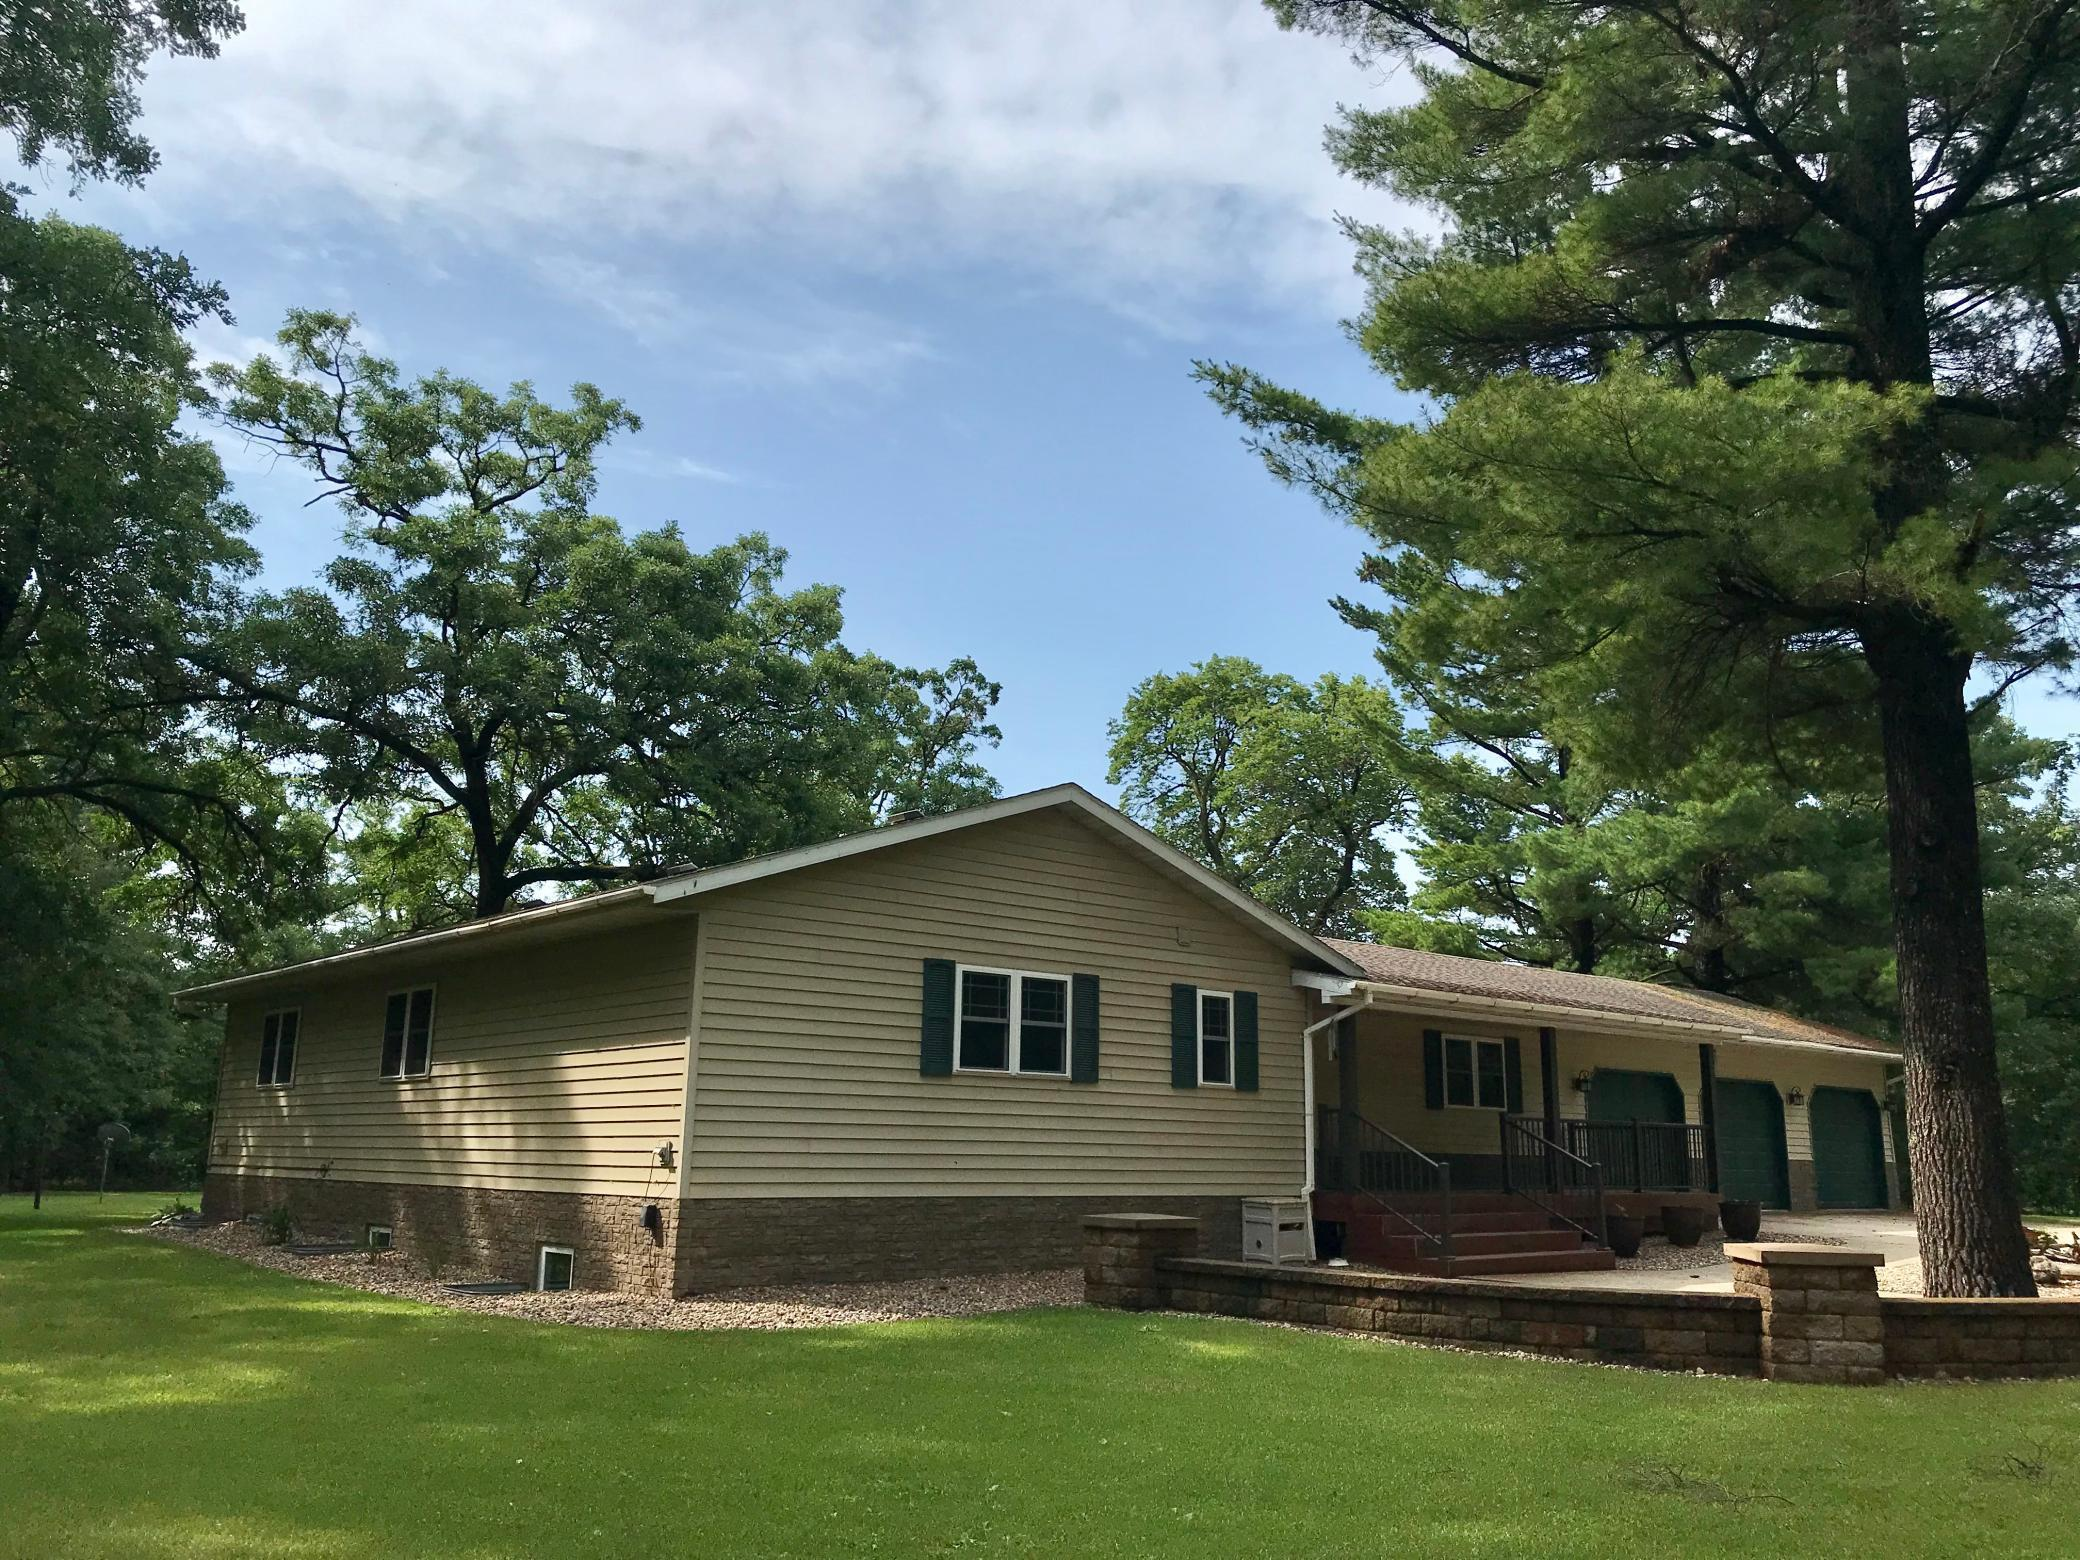 32421 Ladyslipper Drive Property Photo - Browerville, MN real estate listing